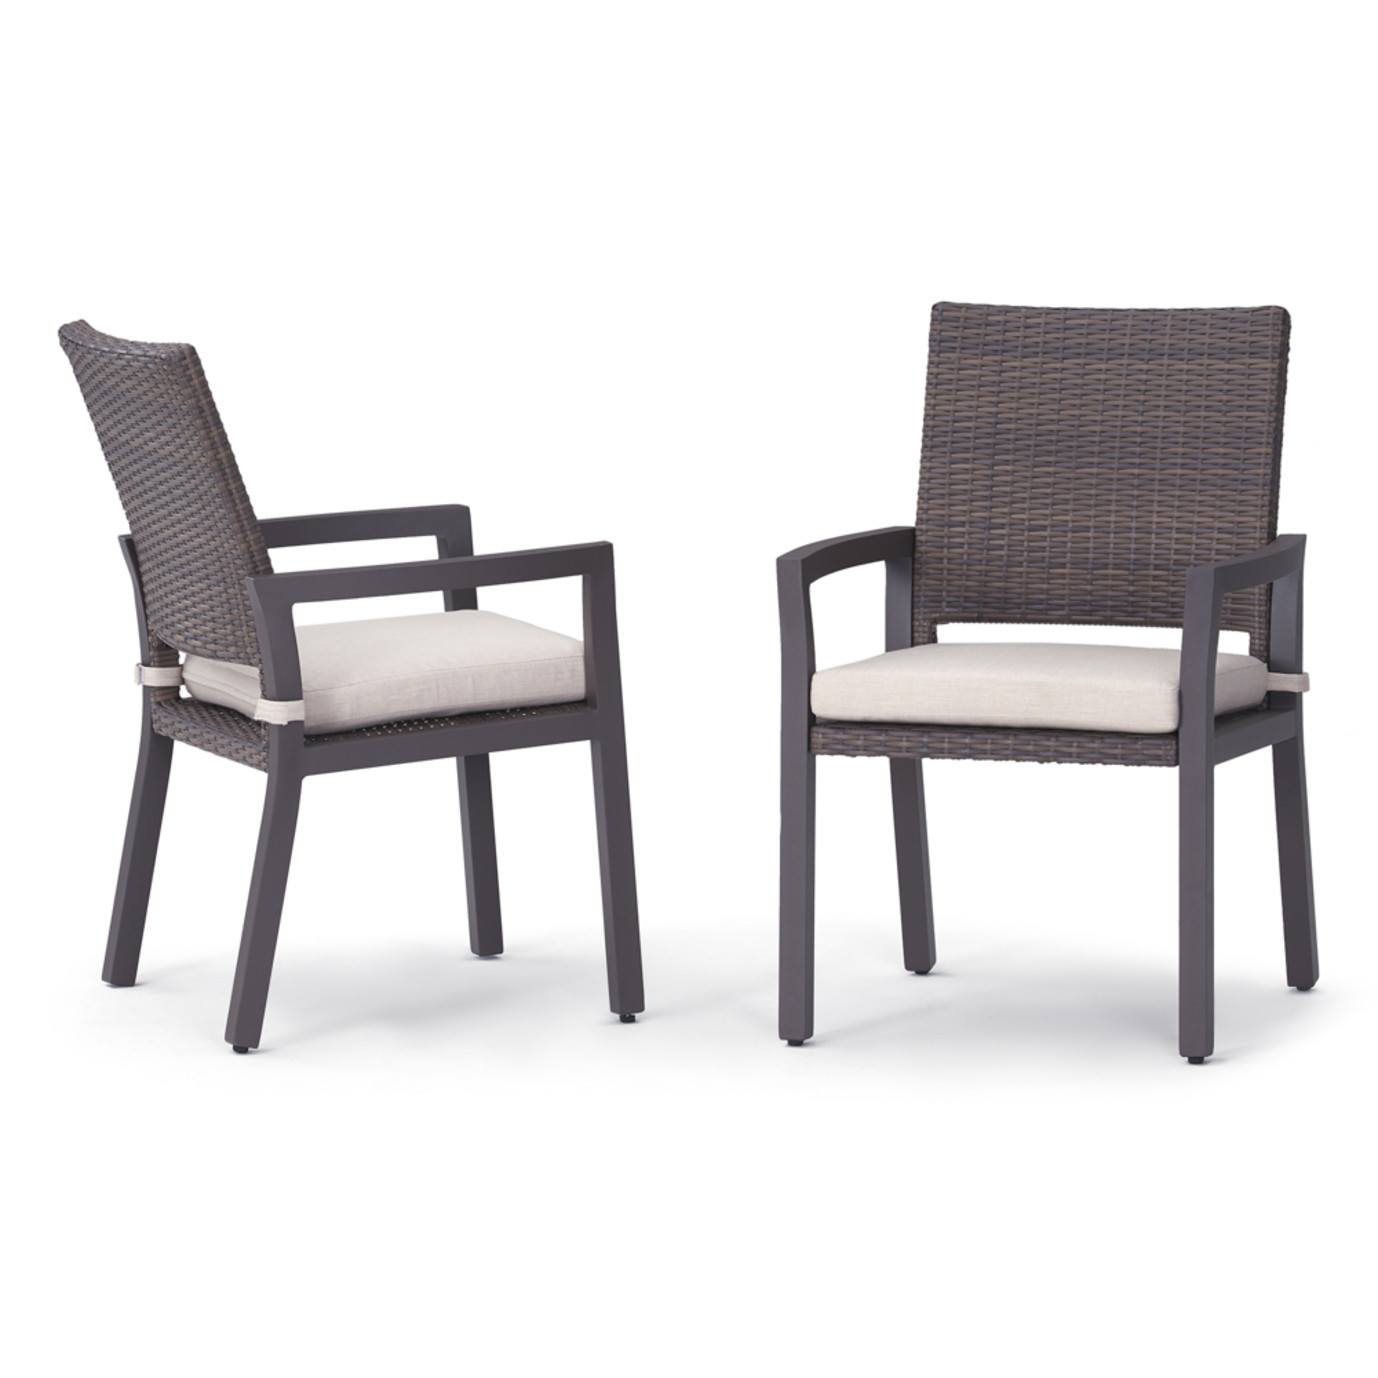 Milea™ 8pc Dining Chairs